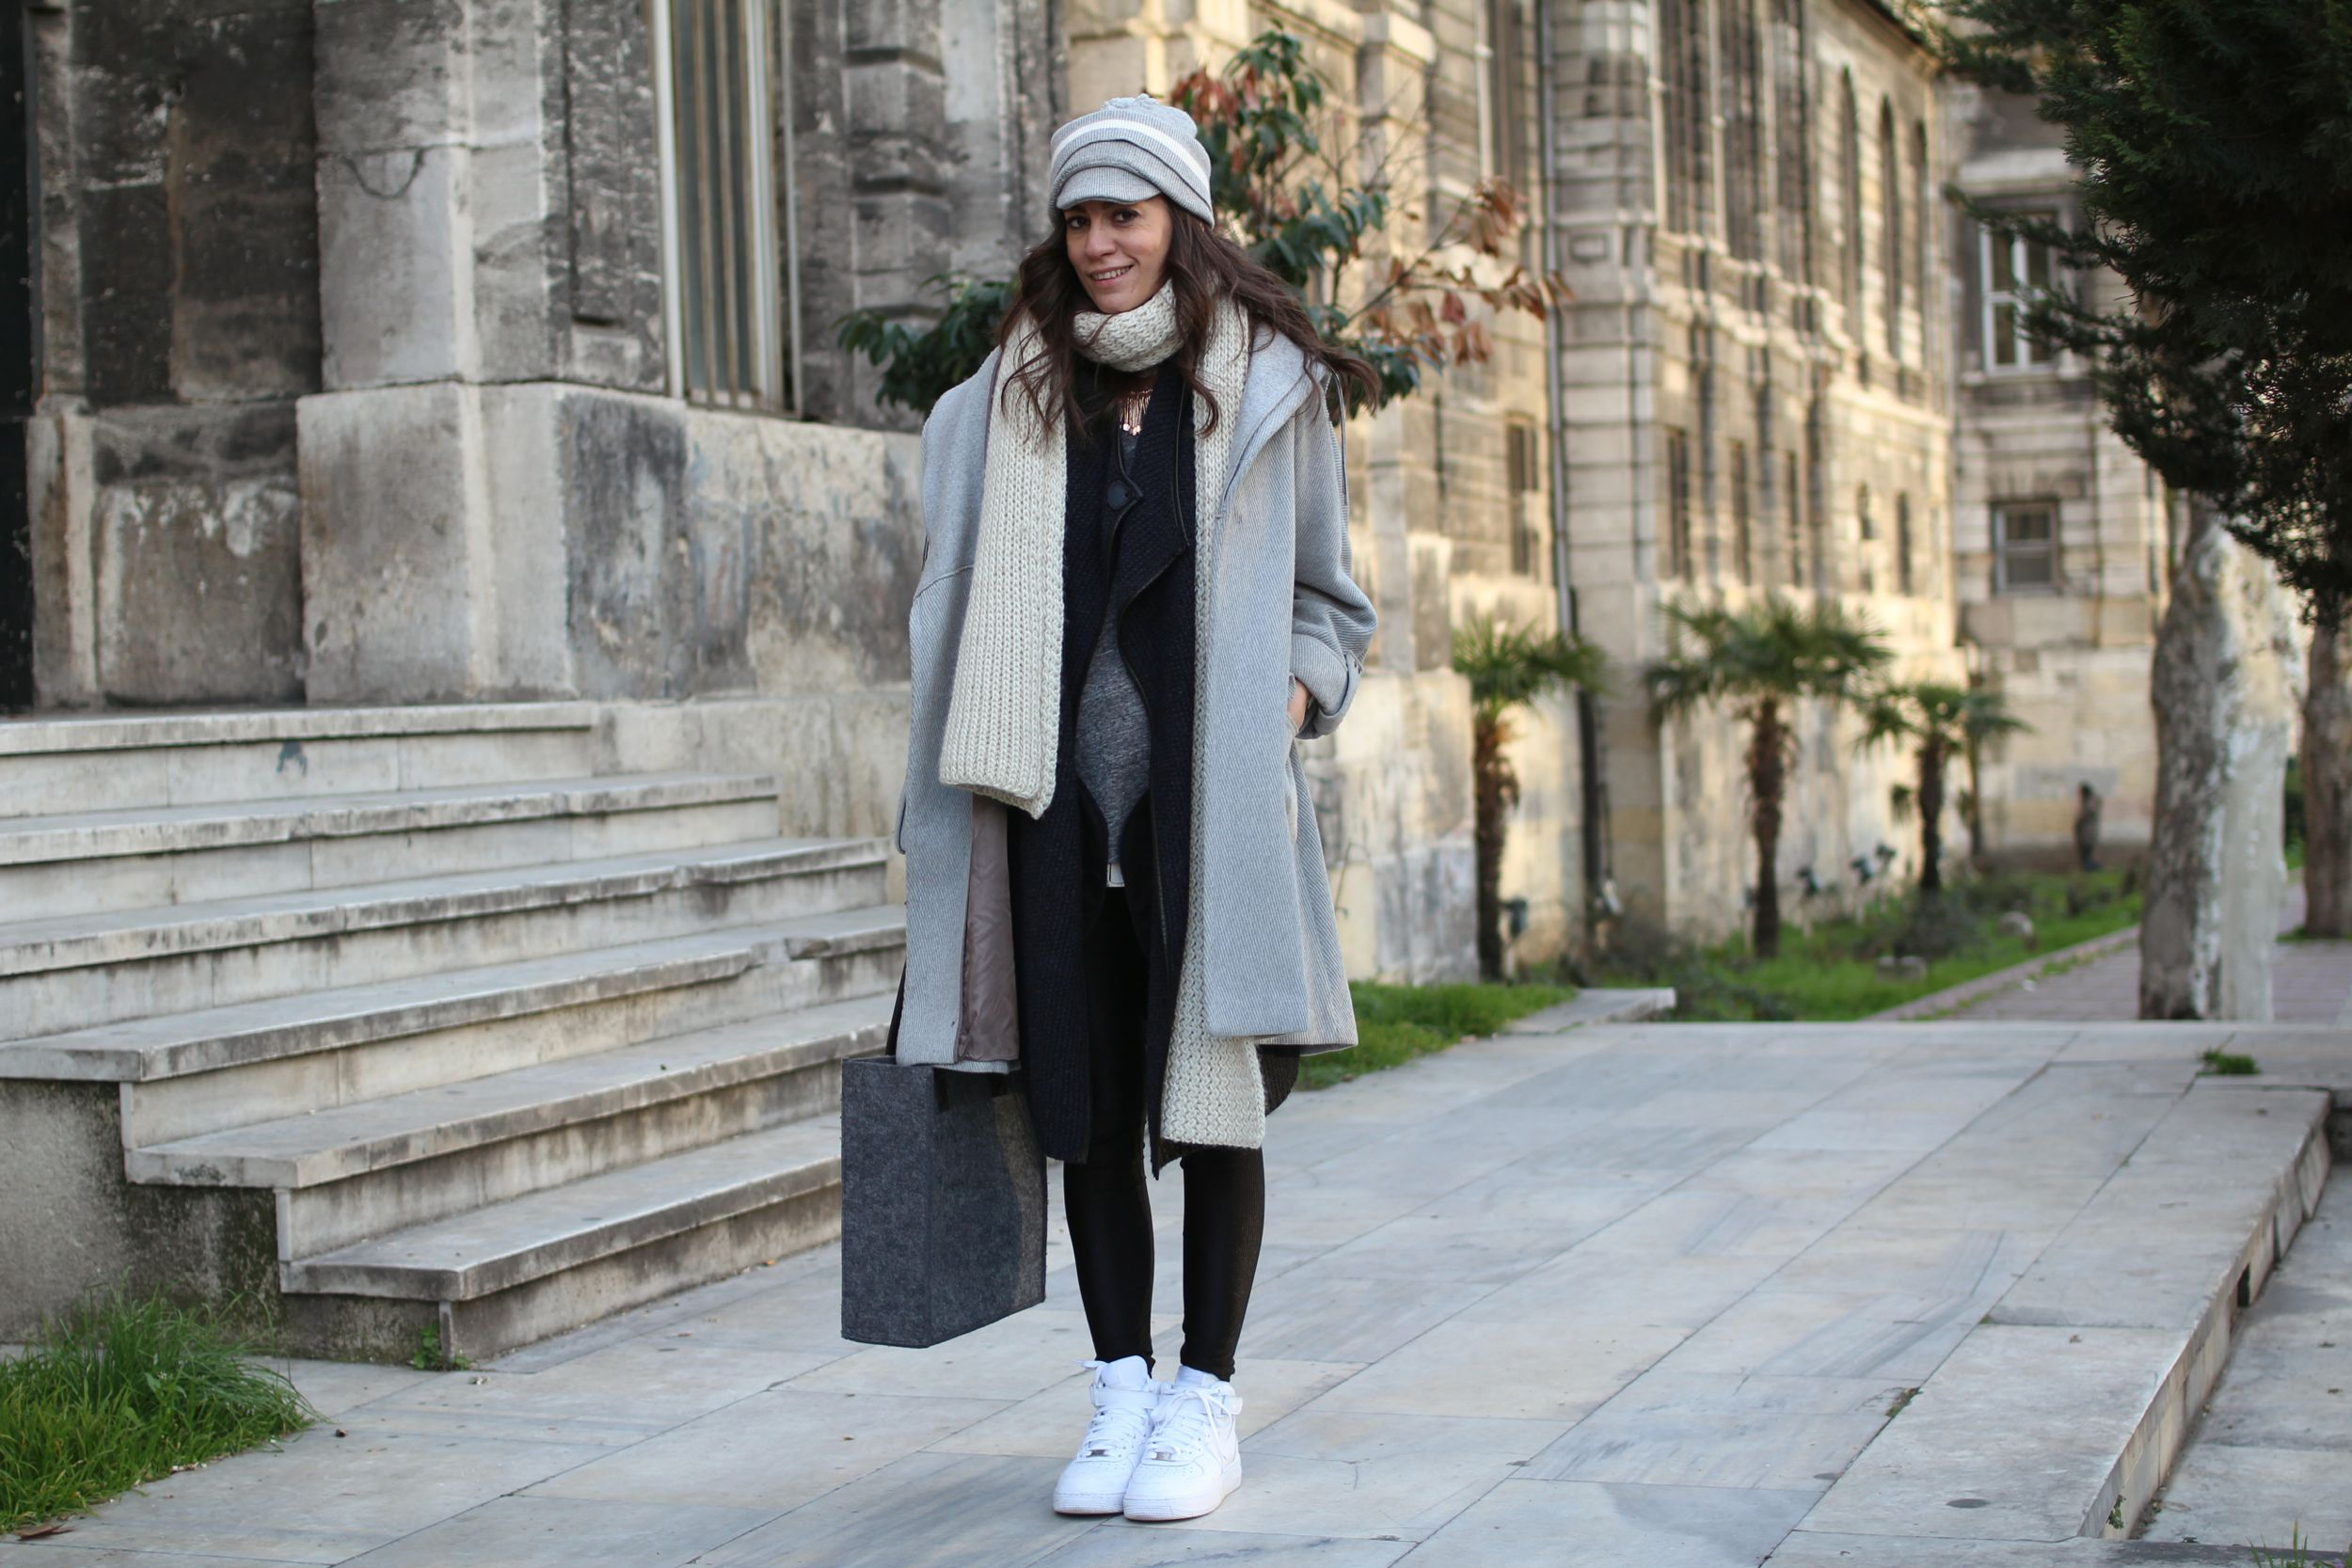 off ne giysem, billur saatci, blogger, turkish blogger, street style, nike, airforce, nike air force, vsp, vsp paris, beymen, marc jacobs, zara man, derishow, iro,